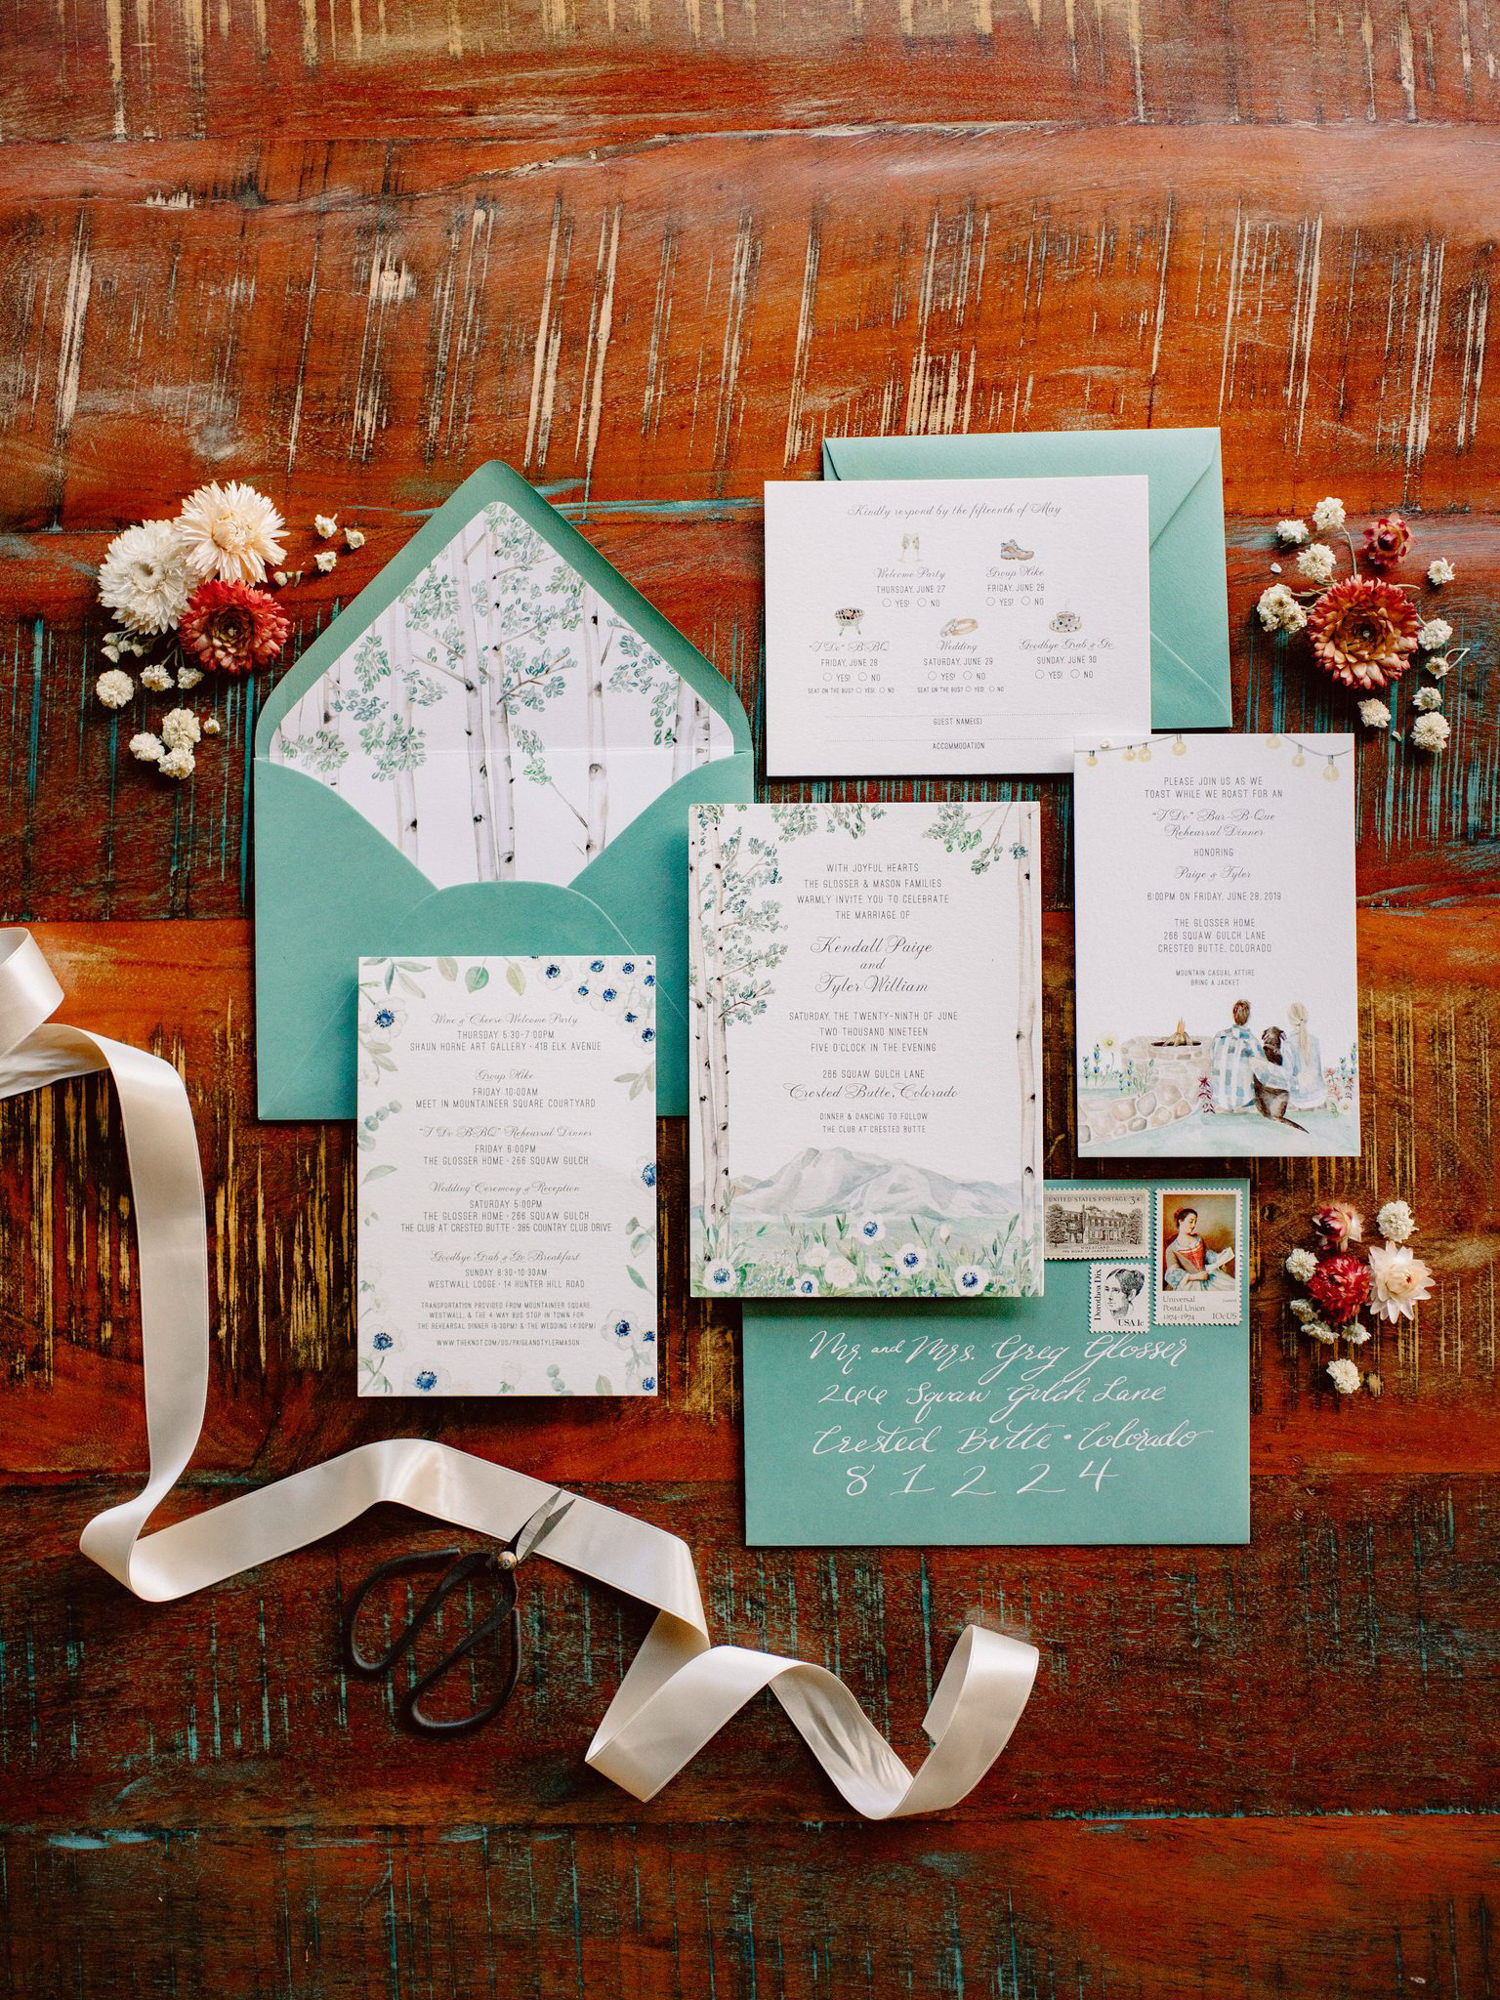 Floral teal invitations suite - Photo by Benj Haisch - Seattle